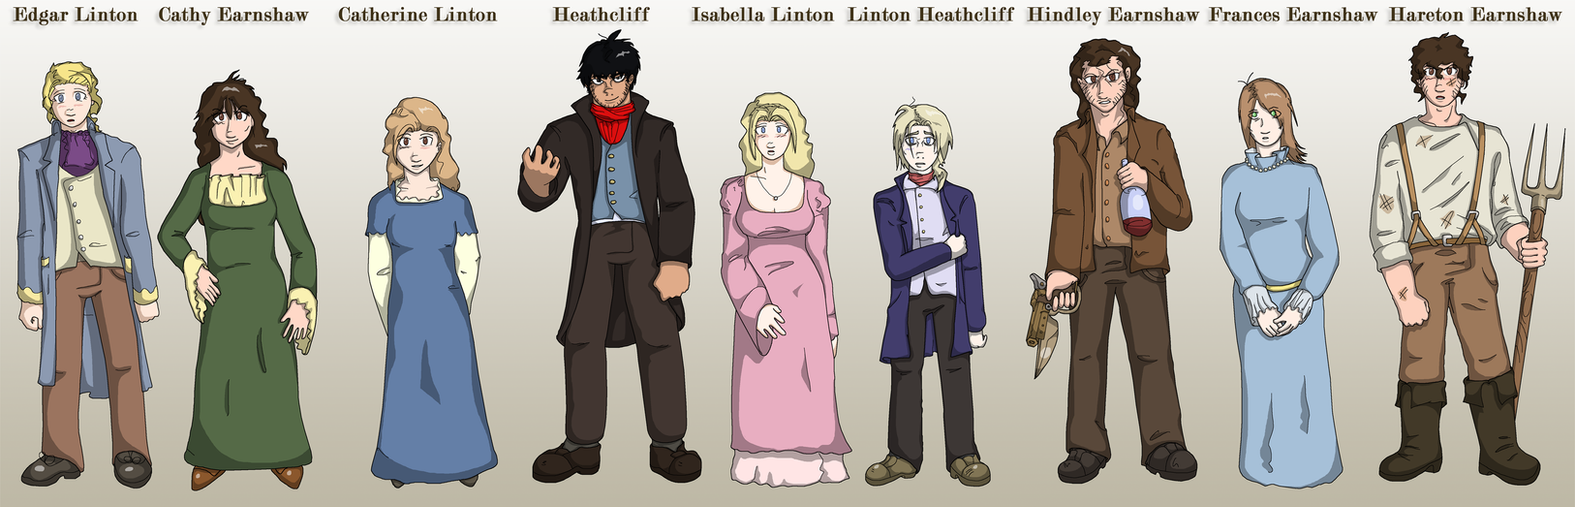 wuthering heights character designs by sregan on  wuthering heights character designs by sregan